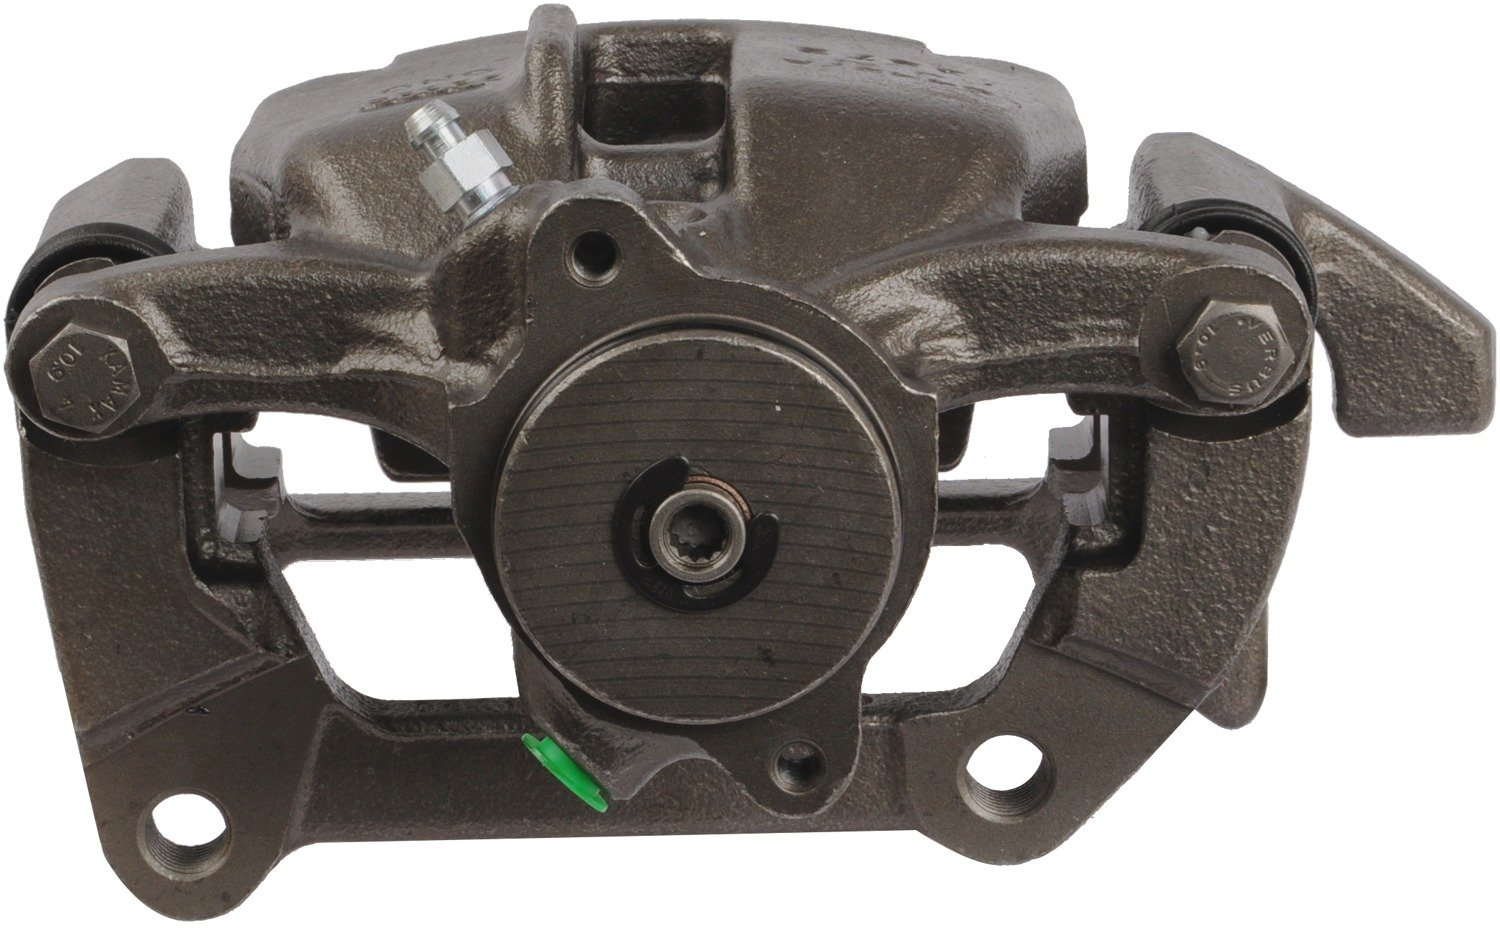 A1 Cardone 19-B7262 Unloaded Brake Caliper with Bracket (Remanufactured) by A1 Cardone